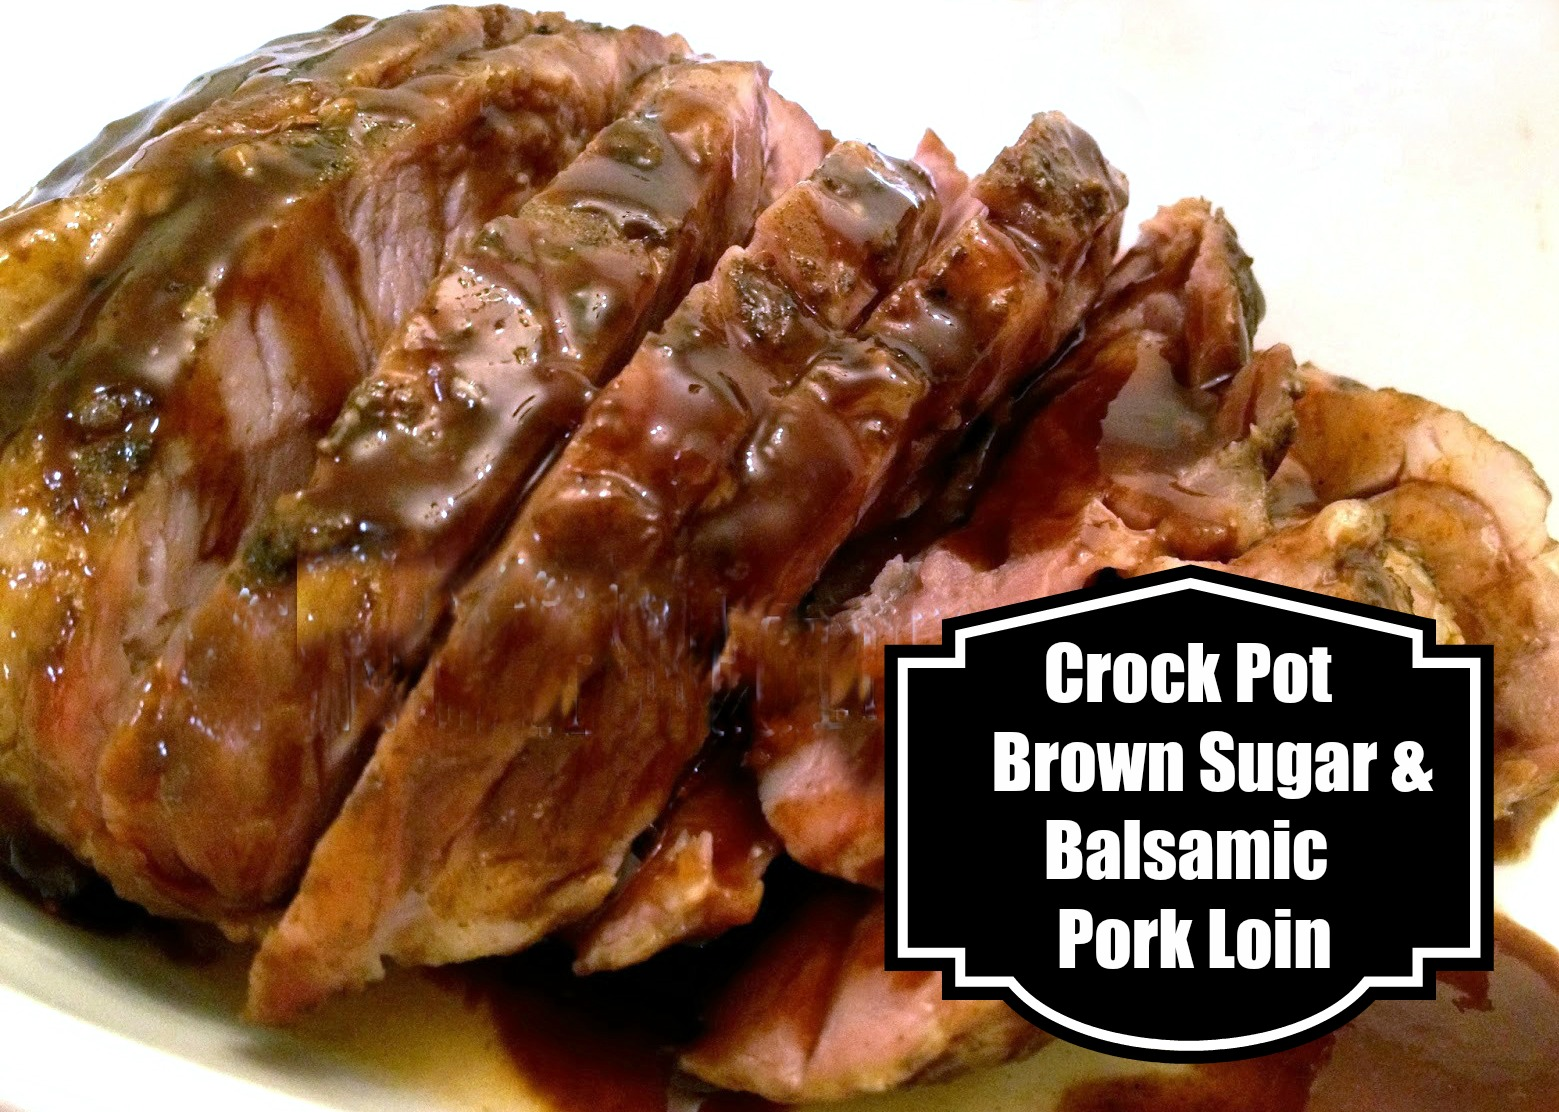 Crockpot Brown Sugar and Balsamic Pork Loin